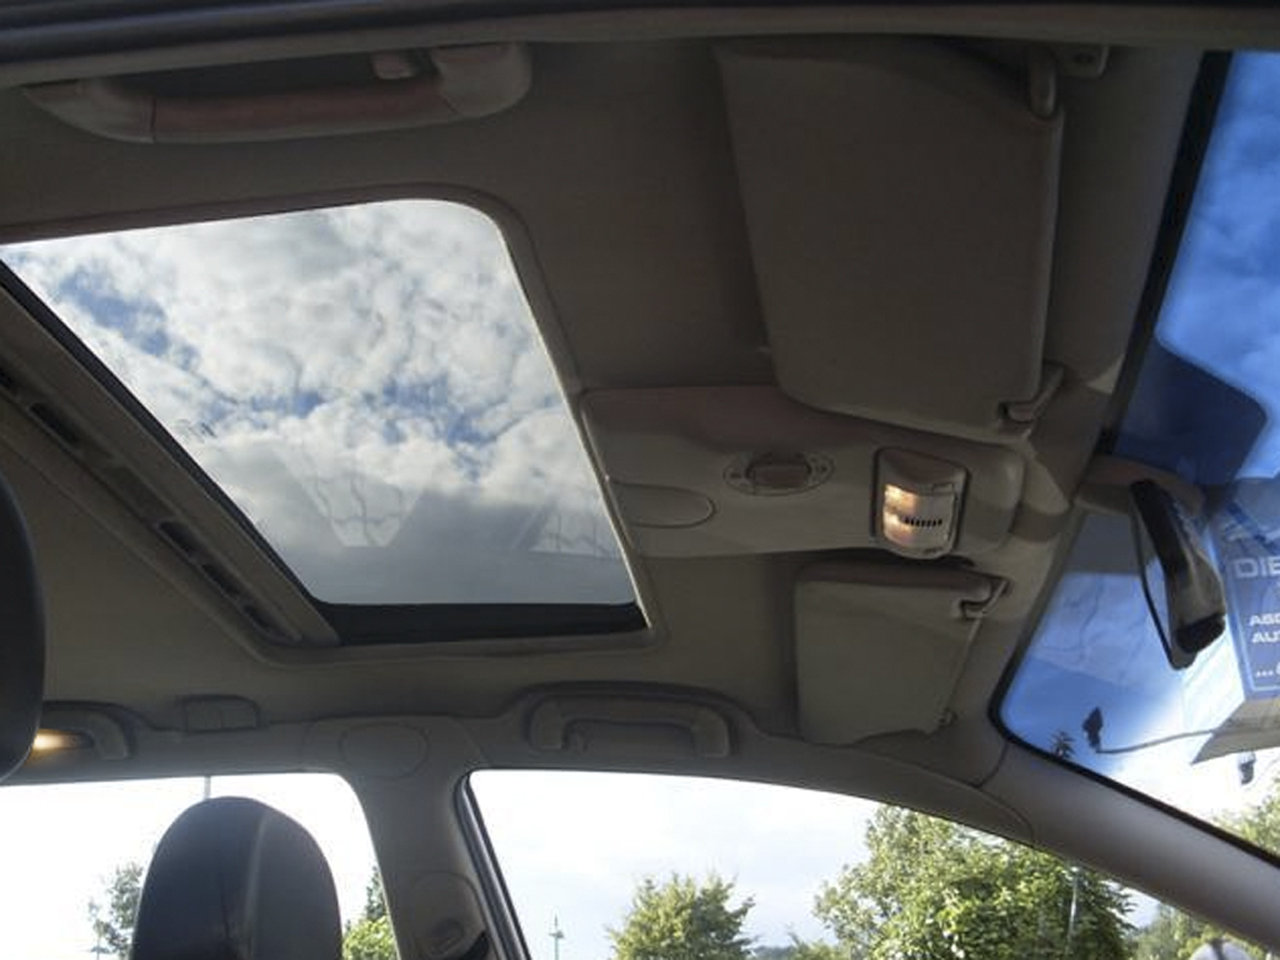 Aftermarket electric sunroof